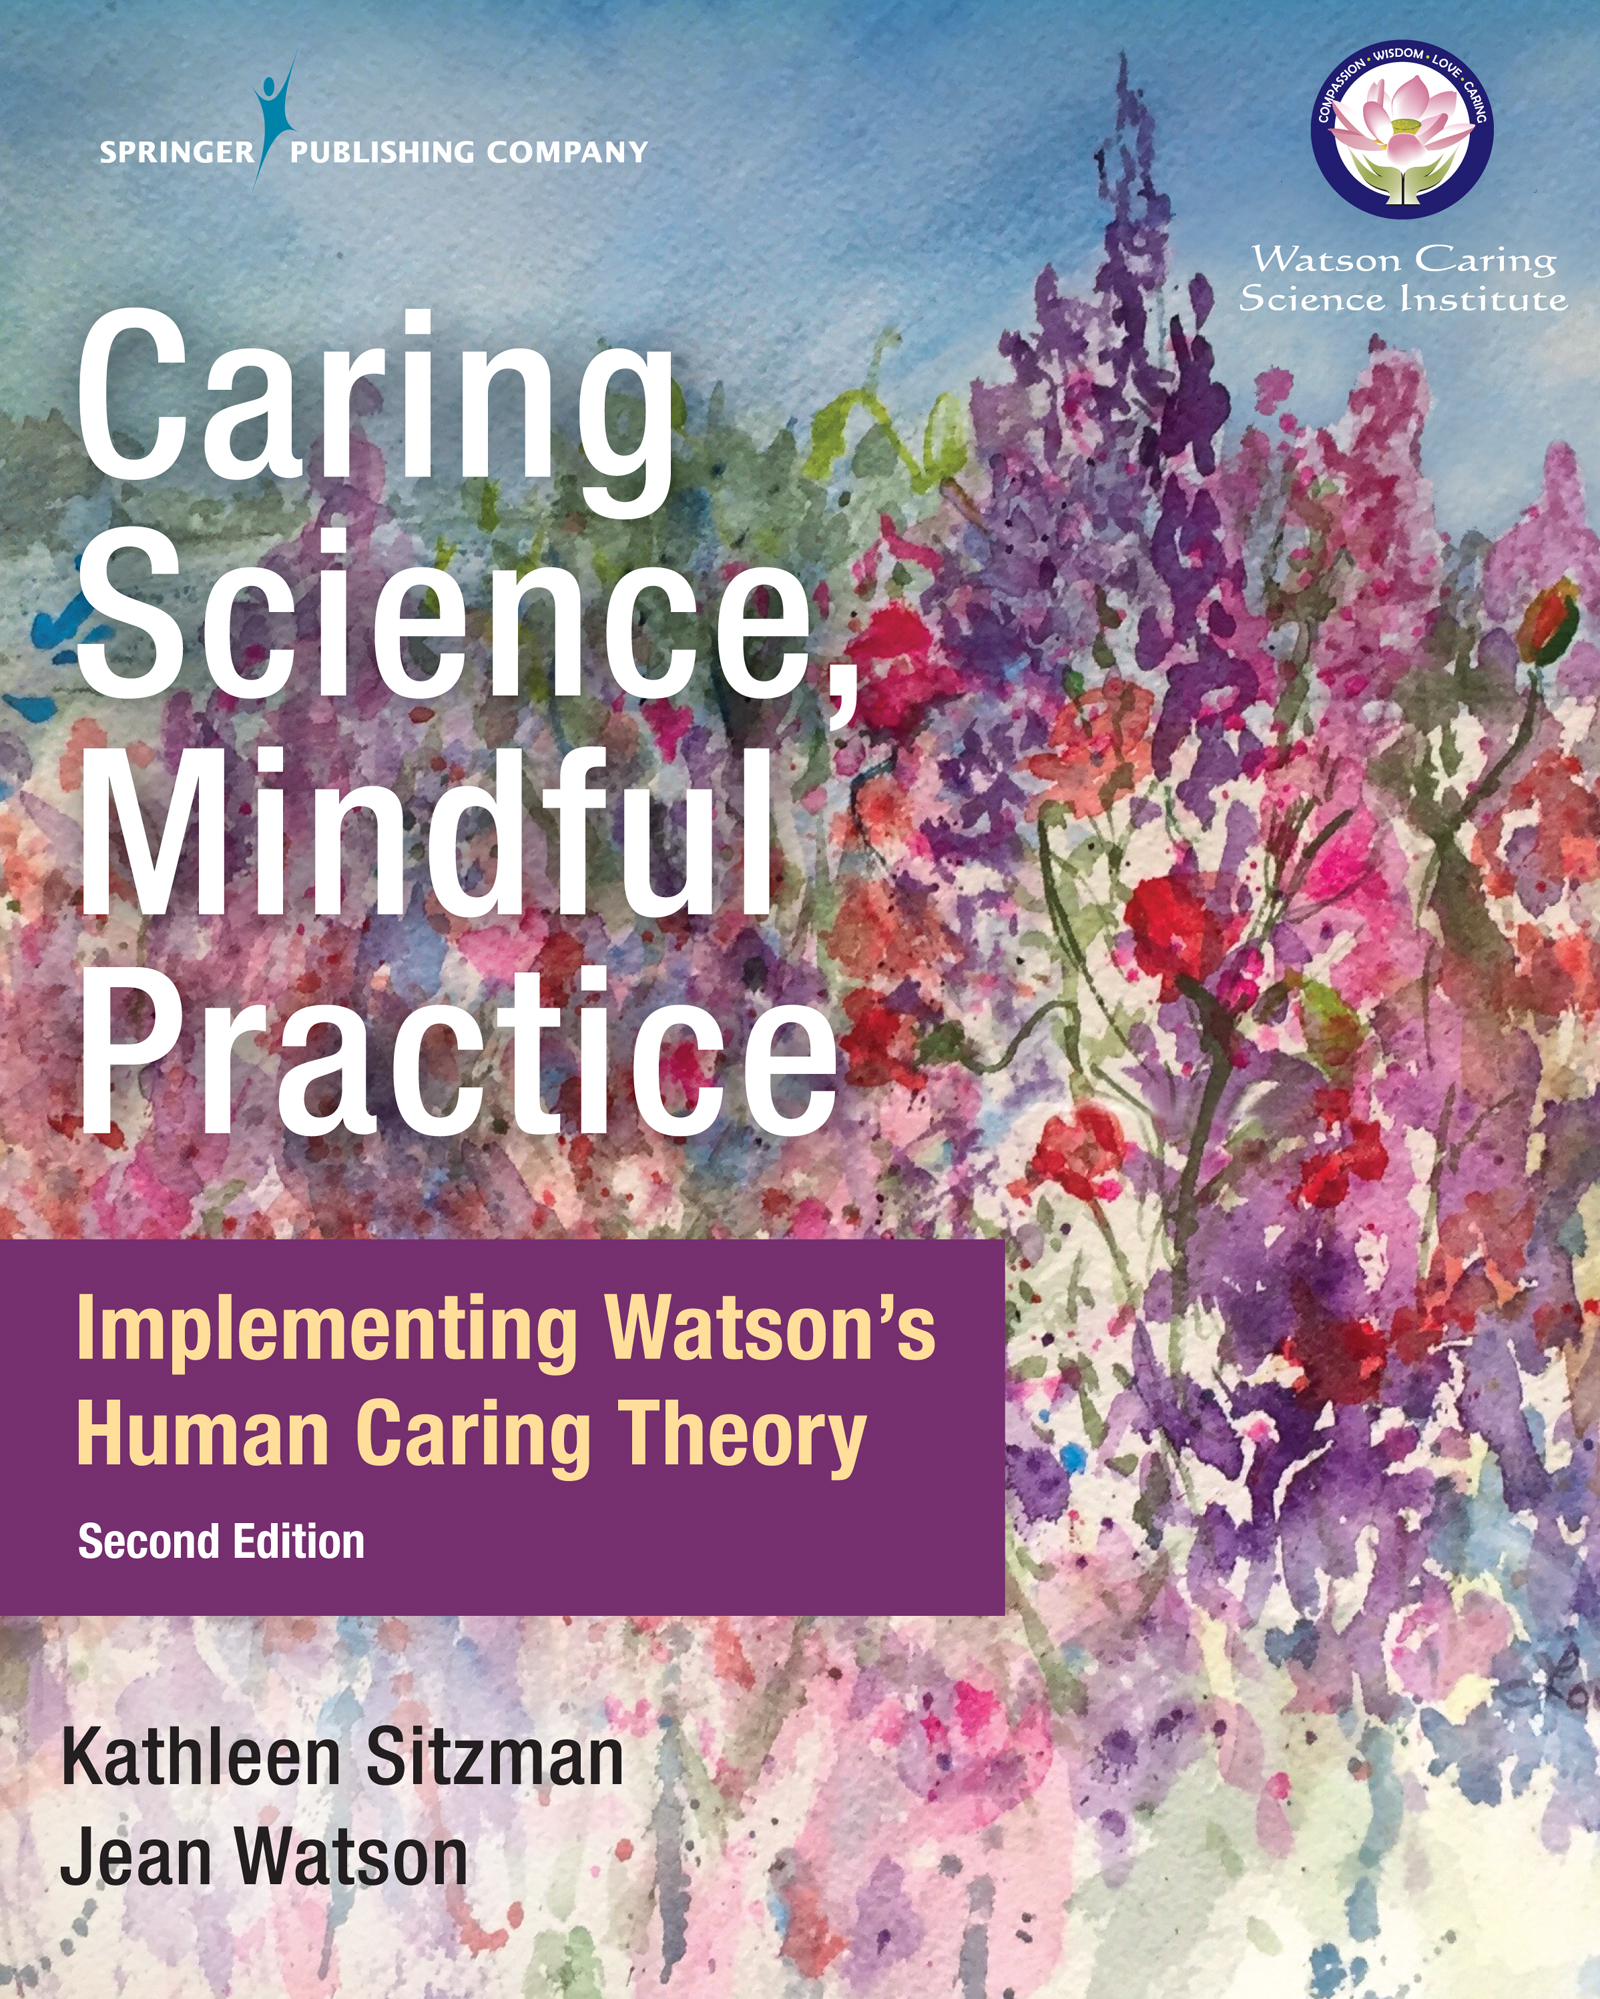 Caring Science, Mindful Practice - Course Reading for Caring Science, Mindful Practice Course. Drawing on the contemplative and mindfulness teachings of Thich Nhat Hanh, the text offers an engaging entry into Human Caring Theory for newcomers and deepens understanding for current practitioners. Clear and simple content supports foundational learning and promotes direct experience related to Watson's work.Buy Now from Publisher (20% off Coupon Code: SPC20FS)Click HERE to download the Publisher's FlyerBuy Now from AmazonClick HERE for Chinese edition